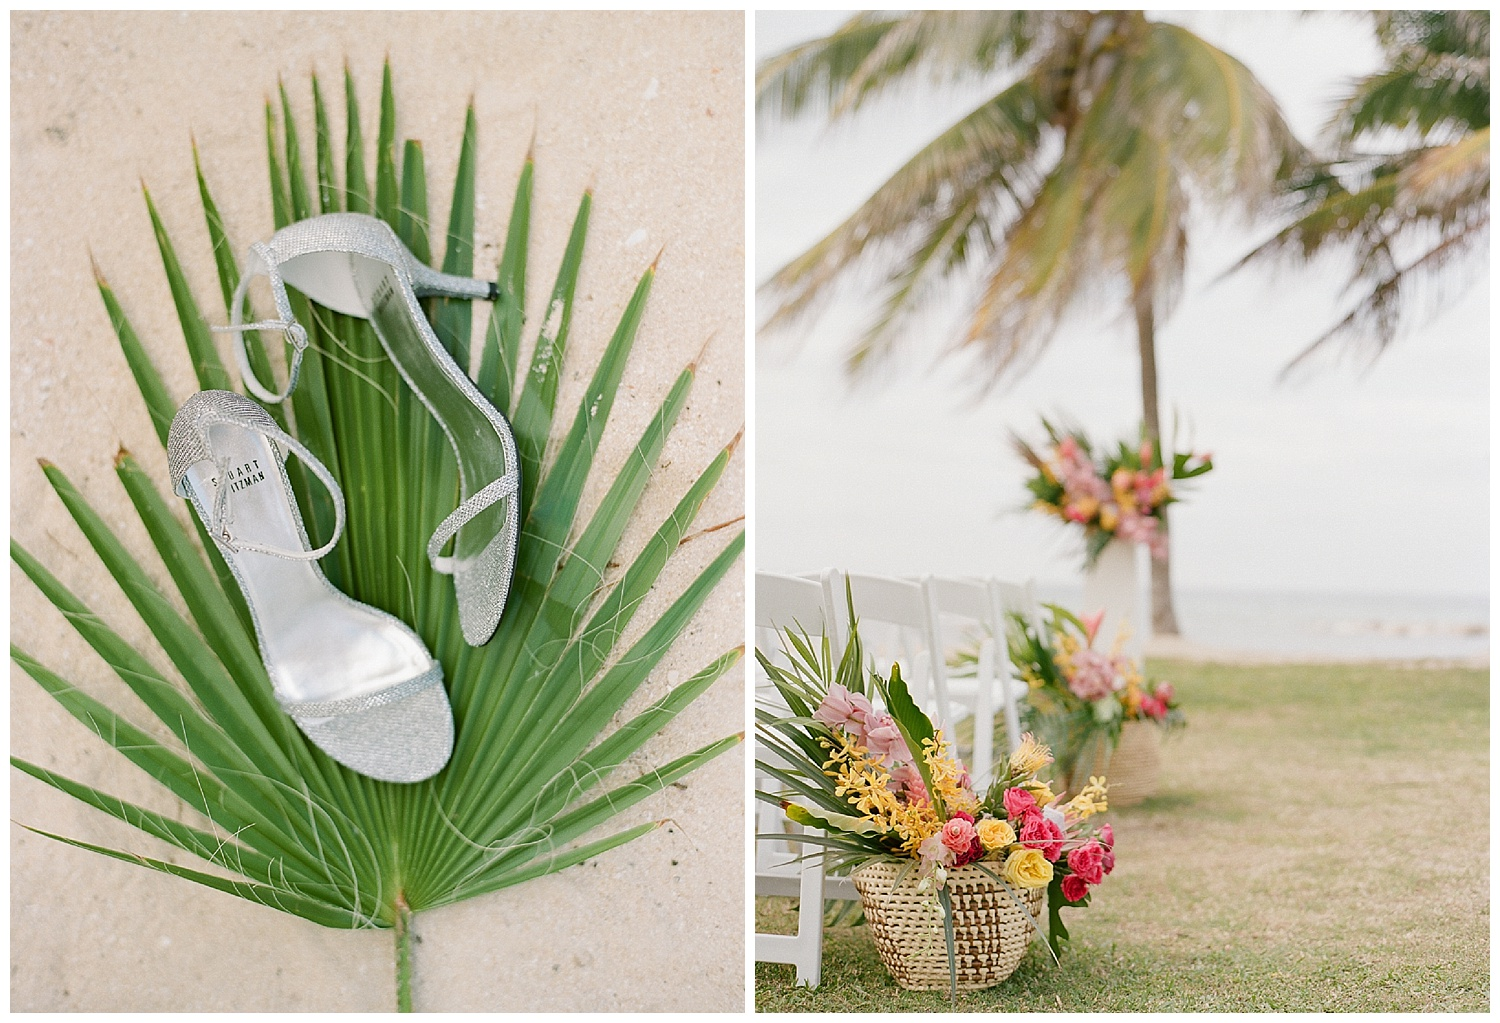 Stuart Weitzman heels on a palm frond before the ceremony in Montego Bay, Jamaica; Sylvie Gil Photography